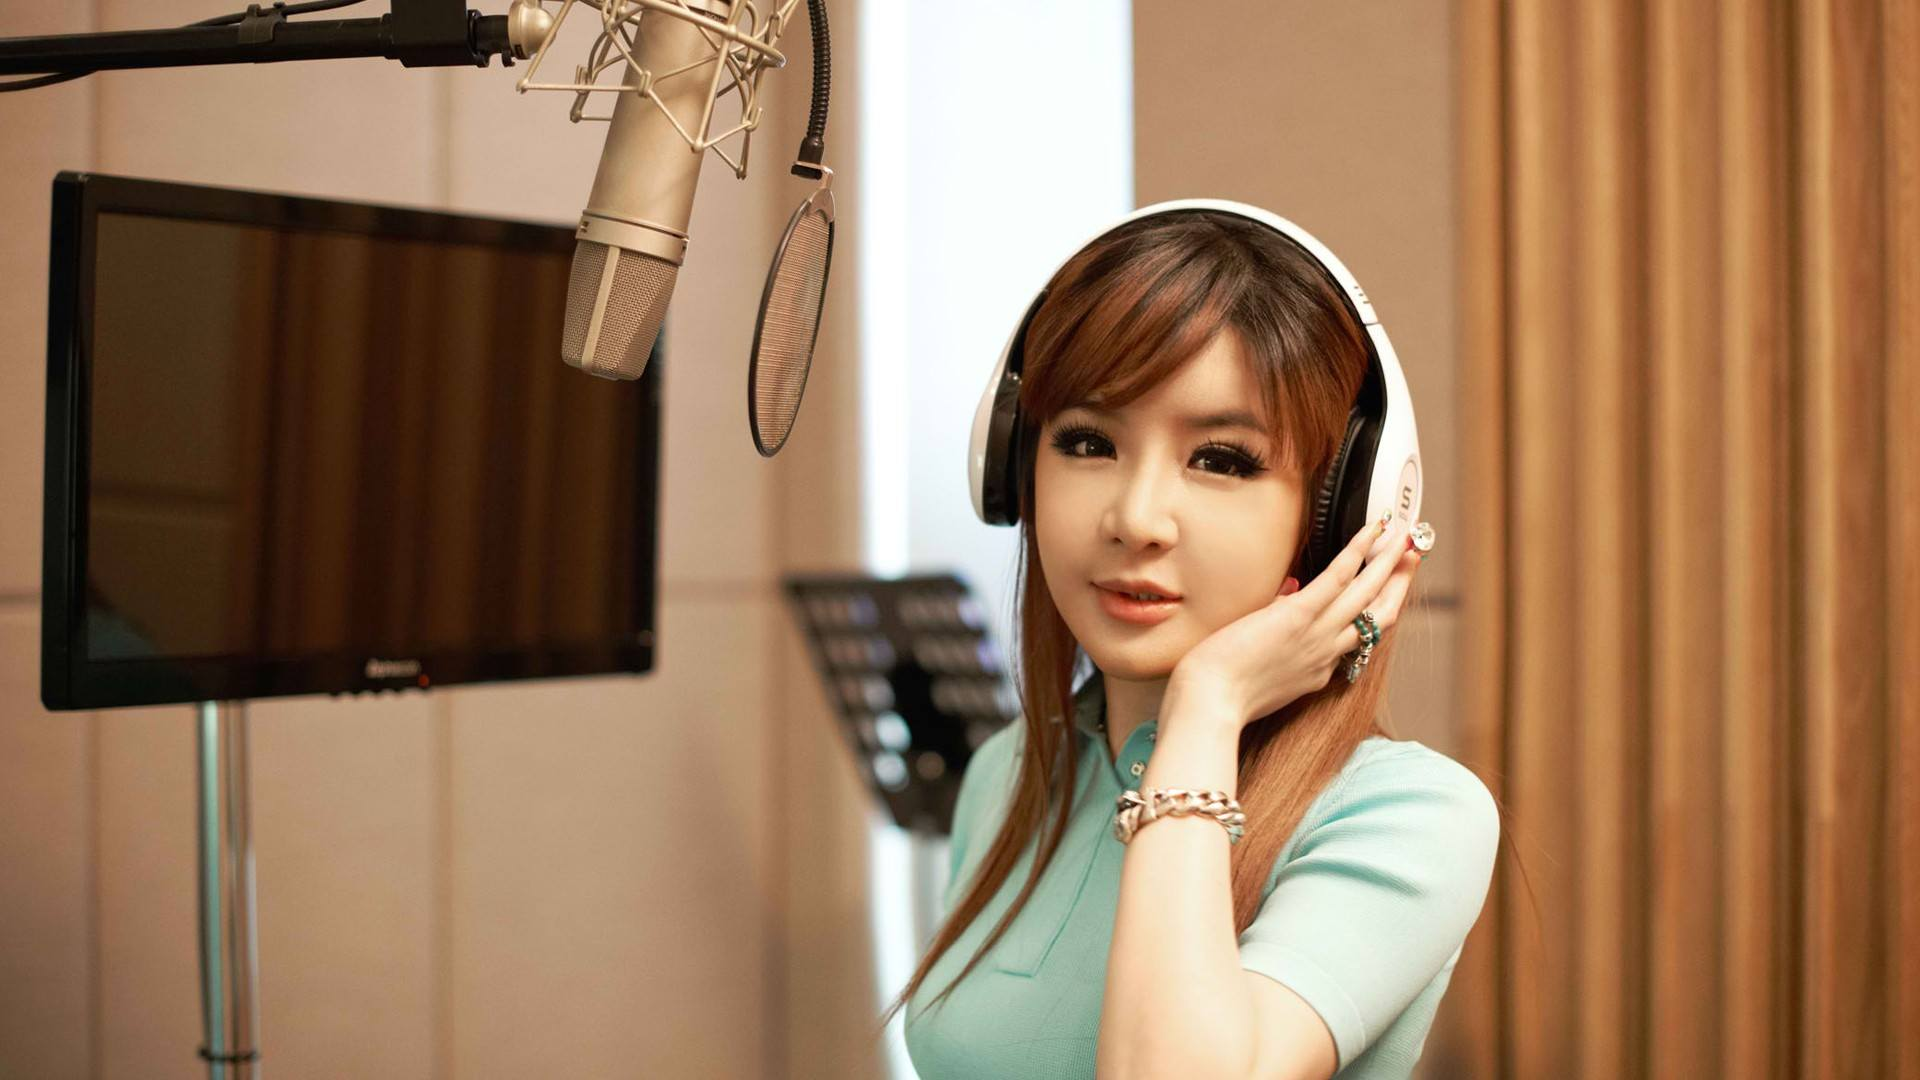 Park Bom's Latest Tweets Suggest She May Still Be Part of YG Entertainment